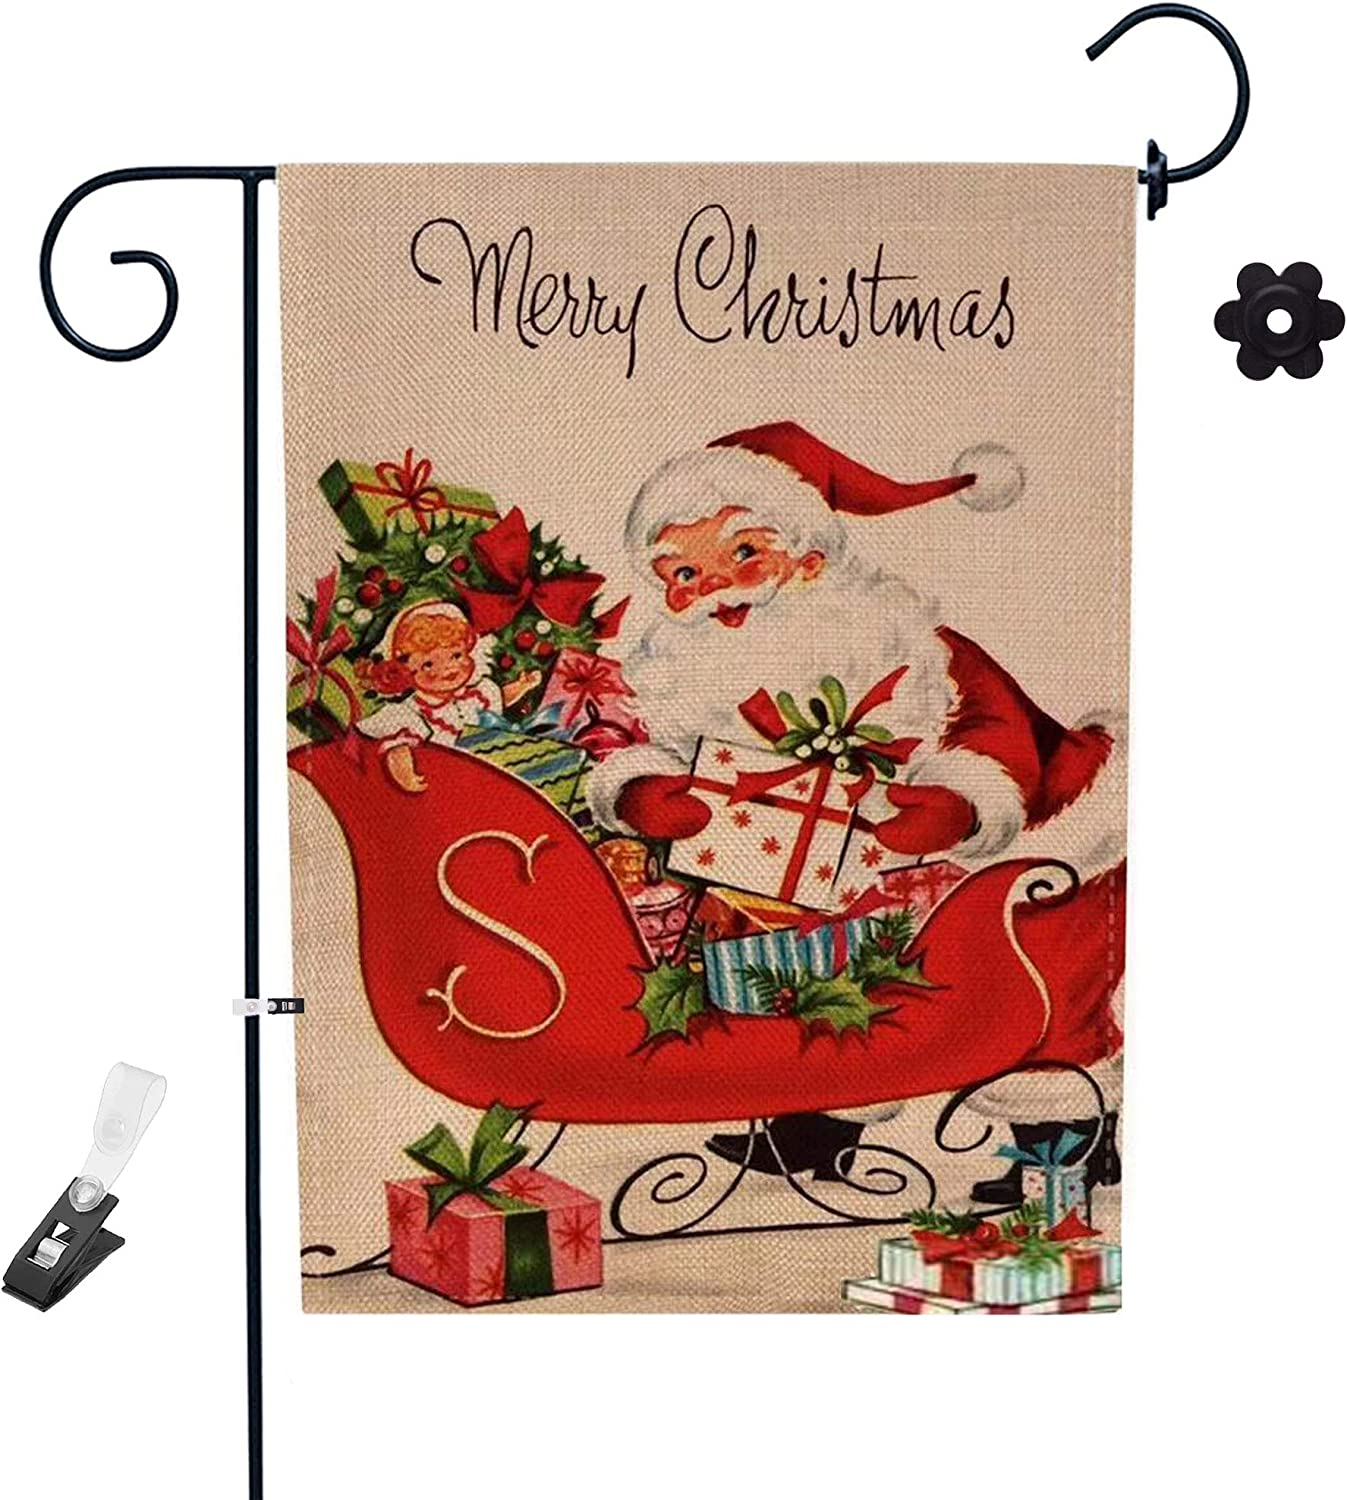 Zgoo Christmas Garden Flag, Happy Christmas Decoration 12 x 18 Inch House Merry Christmas Outdoor Decor Double Sided Printed Decorative for Home Lawn Yard